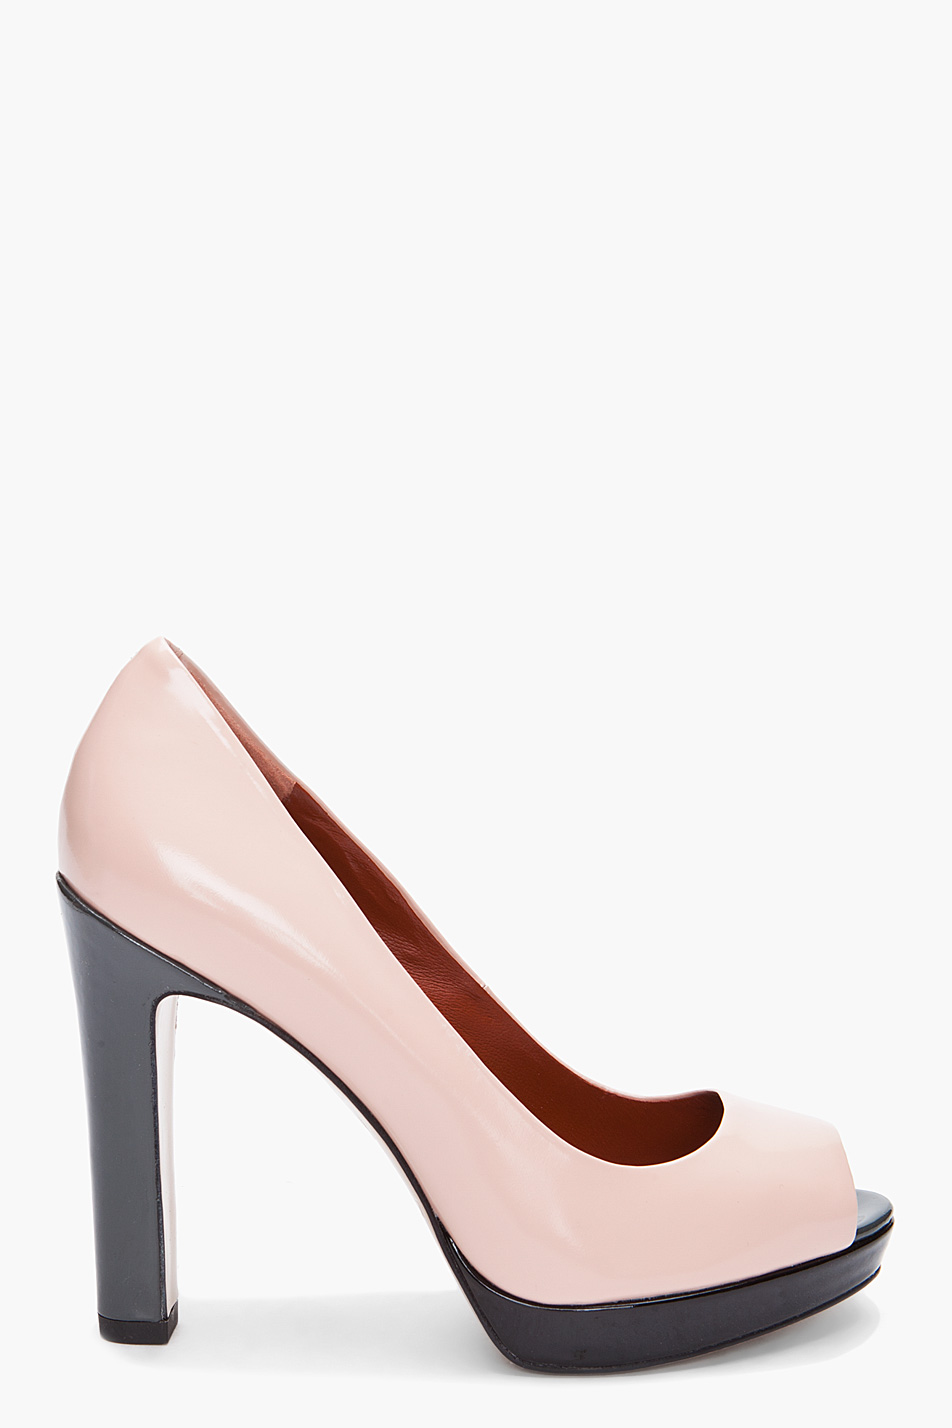 Marc by Marc Jacobs Peep-Toe Platform Pumps free shipping from china clearance collections L1XK1